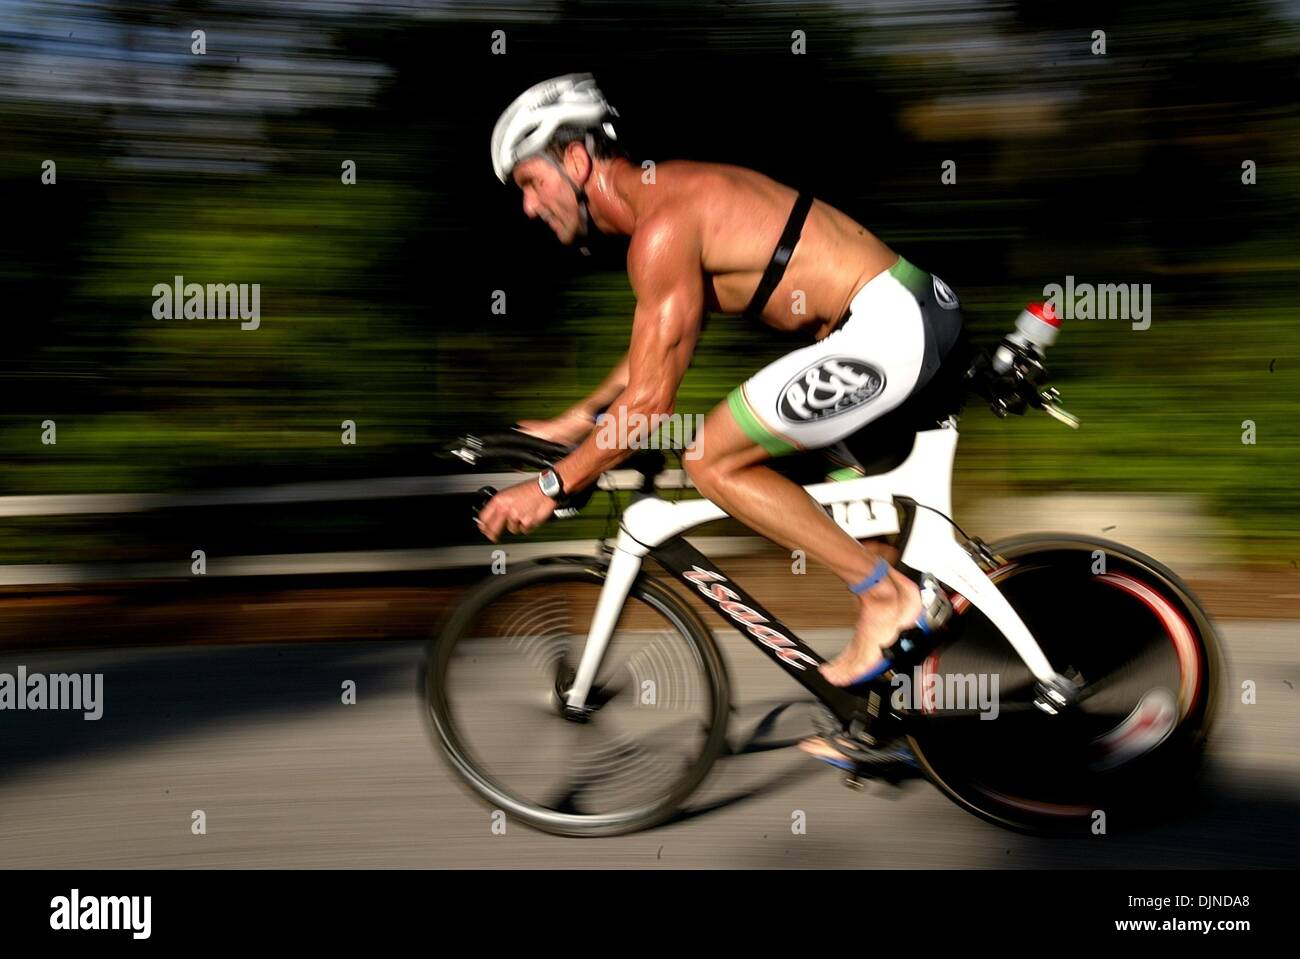 Apr 13, 2008 - Boca Raton, Florida, USA - ANDREW STEINER (371), 32, of Lake Worth, pulls into make the change to the 3.1 mile run during the 17th annual Florida Atlantic University Wellness Triathlon at Spanish River Park in Boca Raton Sunday. Over 700 triathletes competed in the quarter mile swim, ten mile bike and 3.1 mile run. (Credit Image: © Gary Coronado/Palm Beach Post/ZUMA - Stock Image